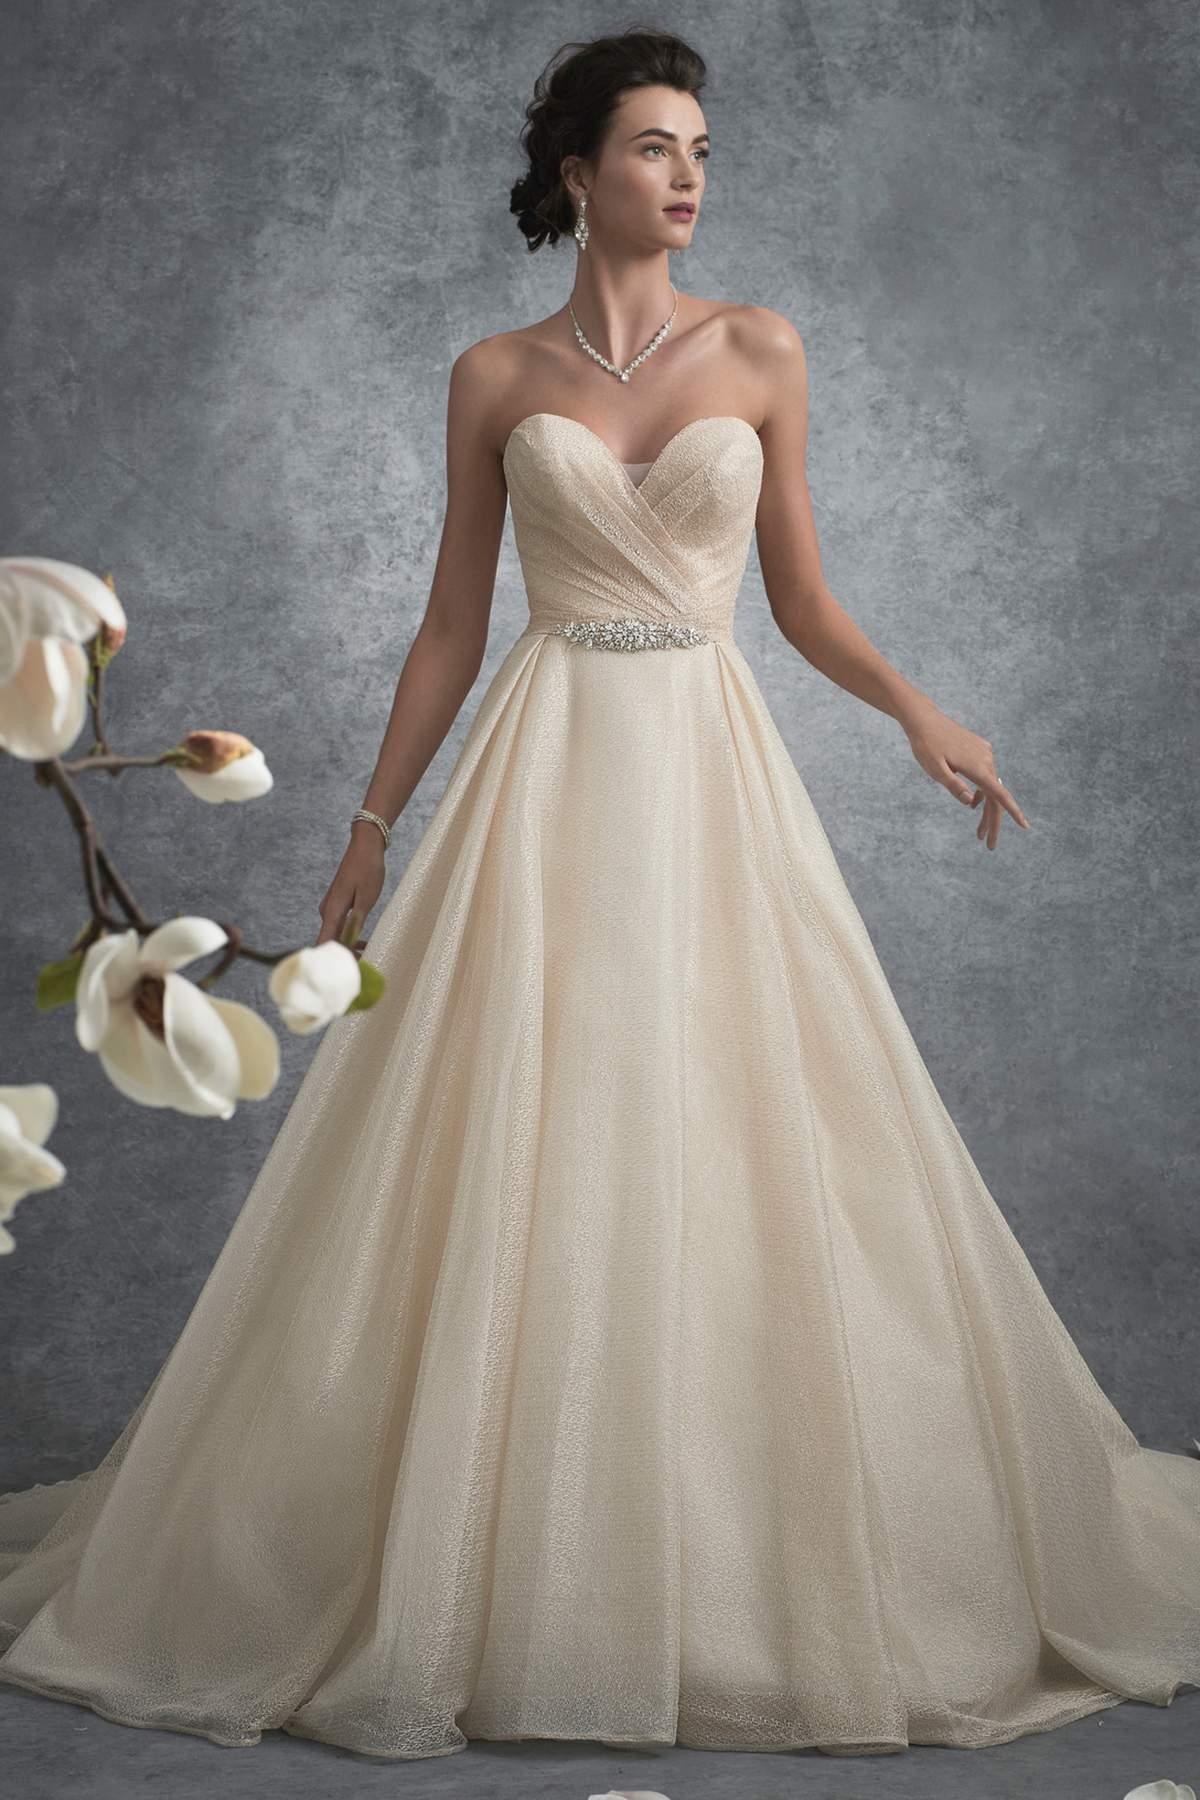 Style Y21760 Venus by Sophia Tolli - Find Your Dream Dress